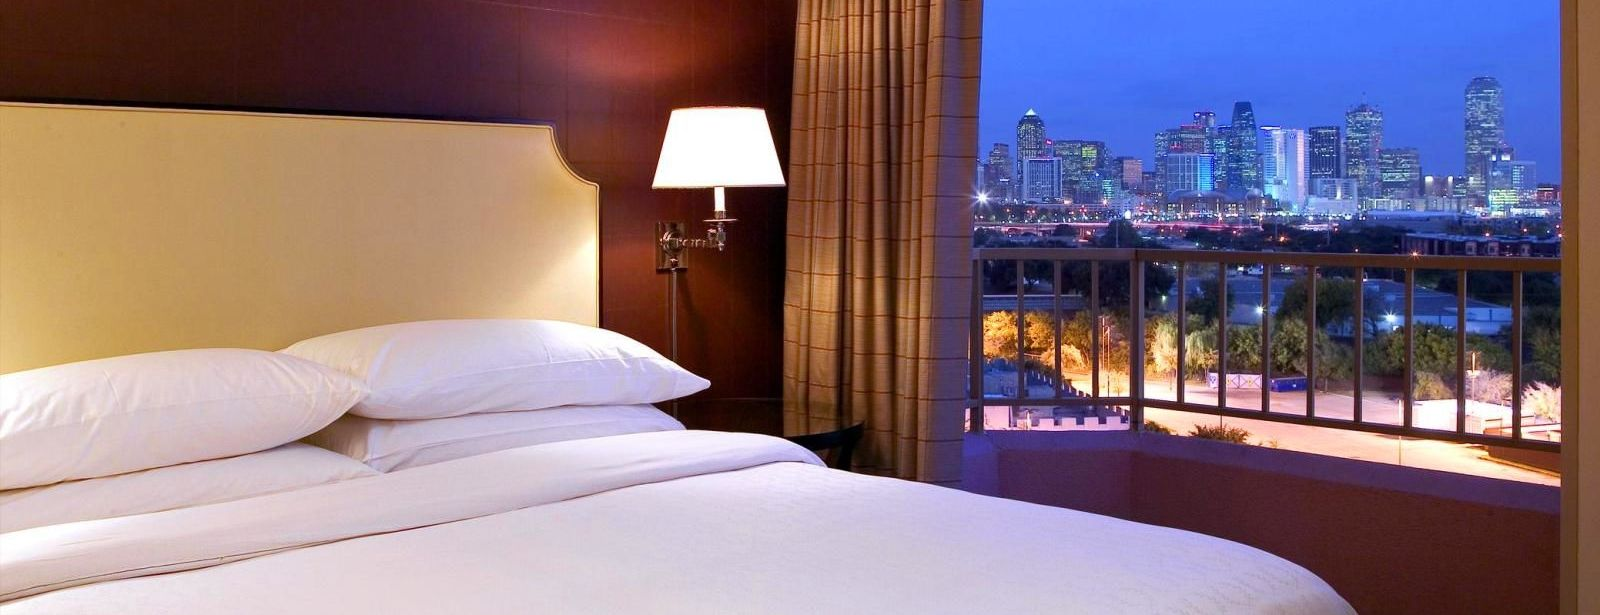 King Suite - Double Bed Suite - Sheraton Suites Market Center Dallas